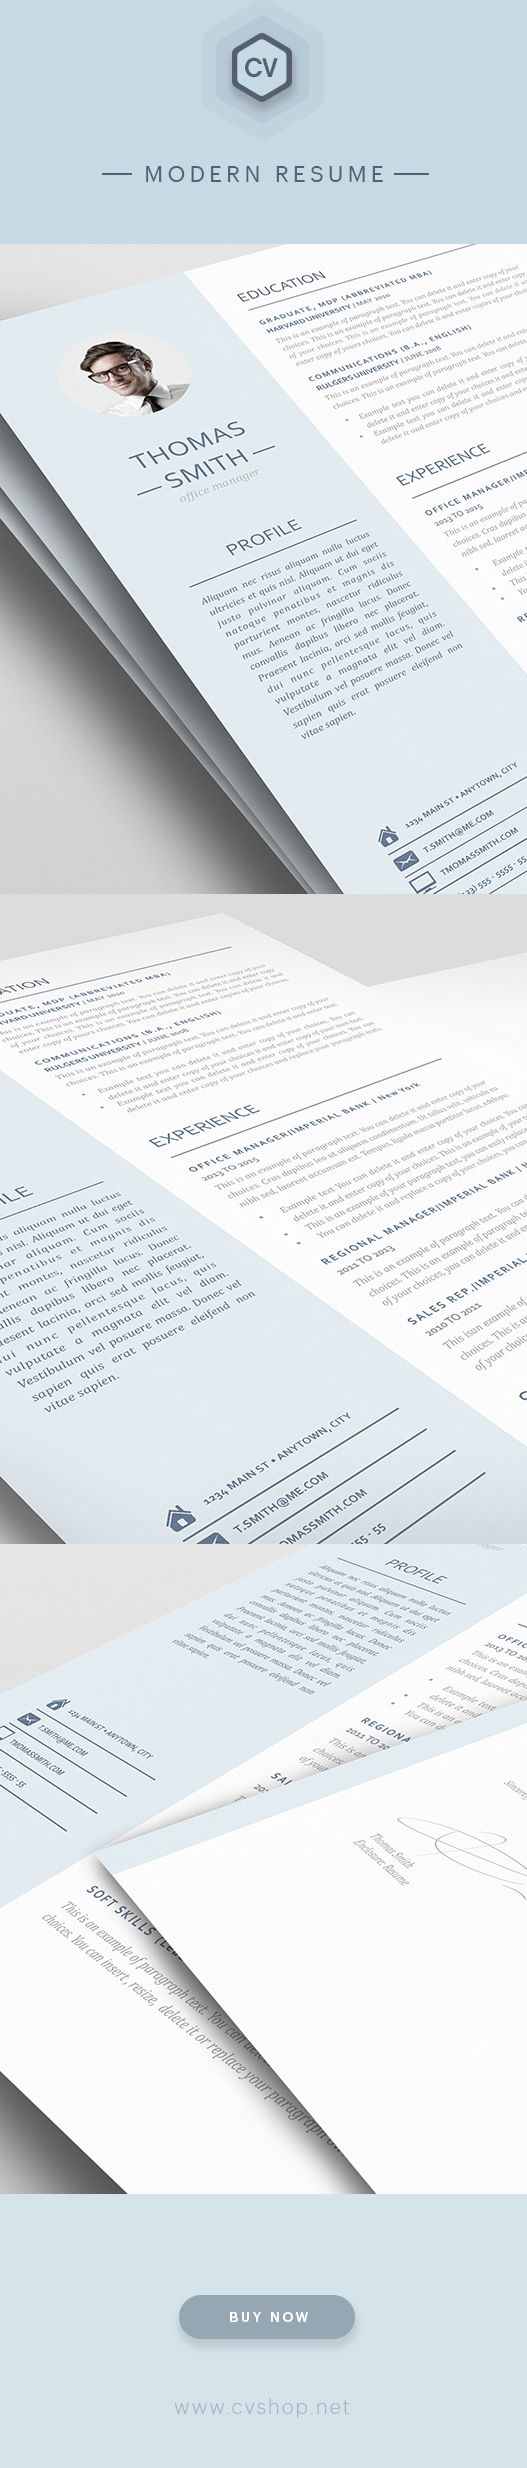 CVSHOP resume templates is the all in one solution